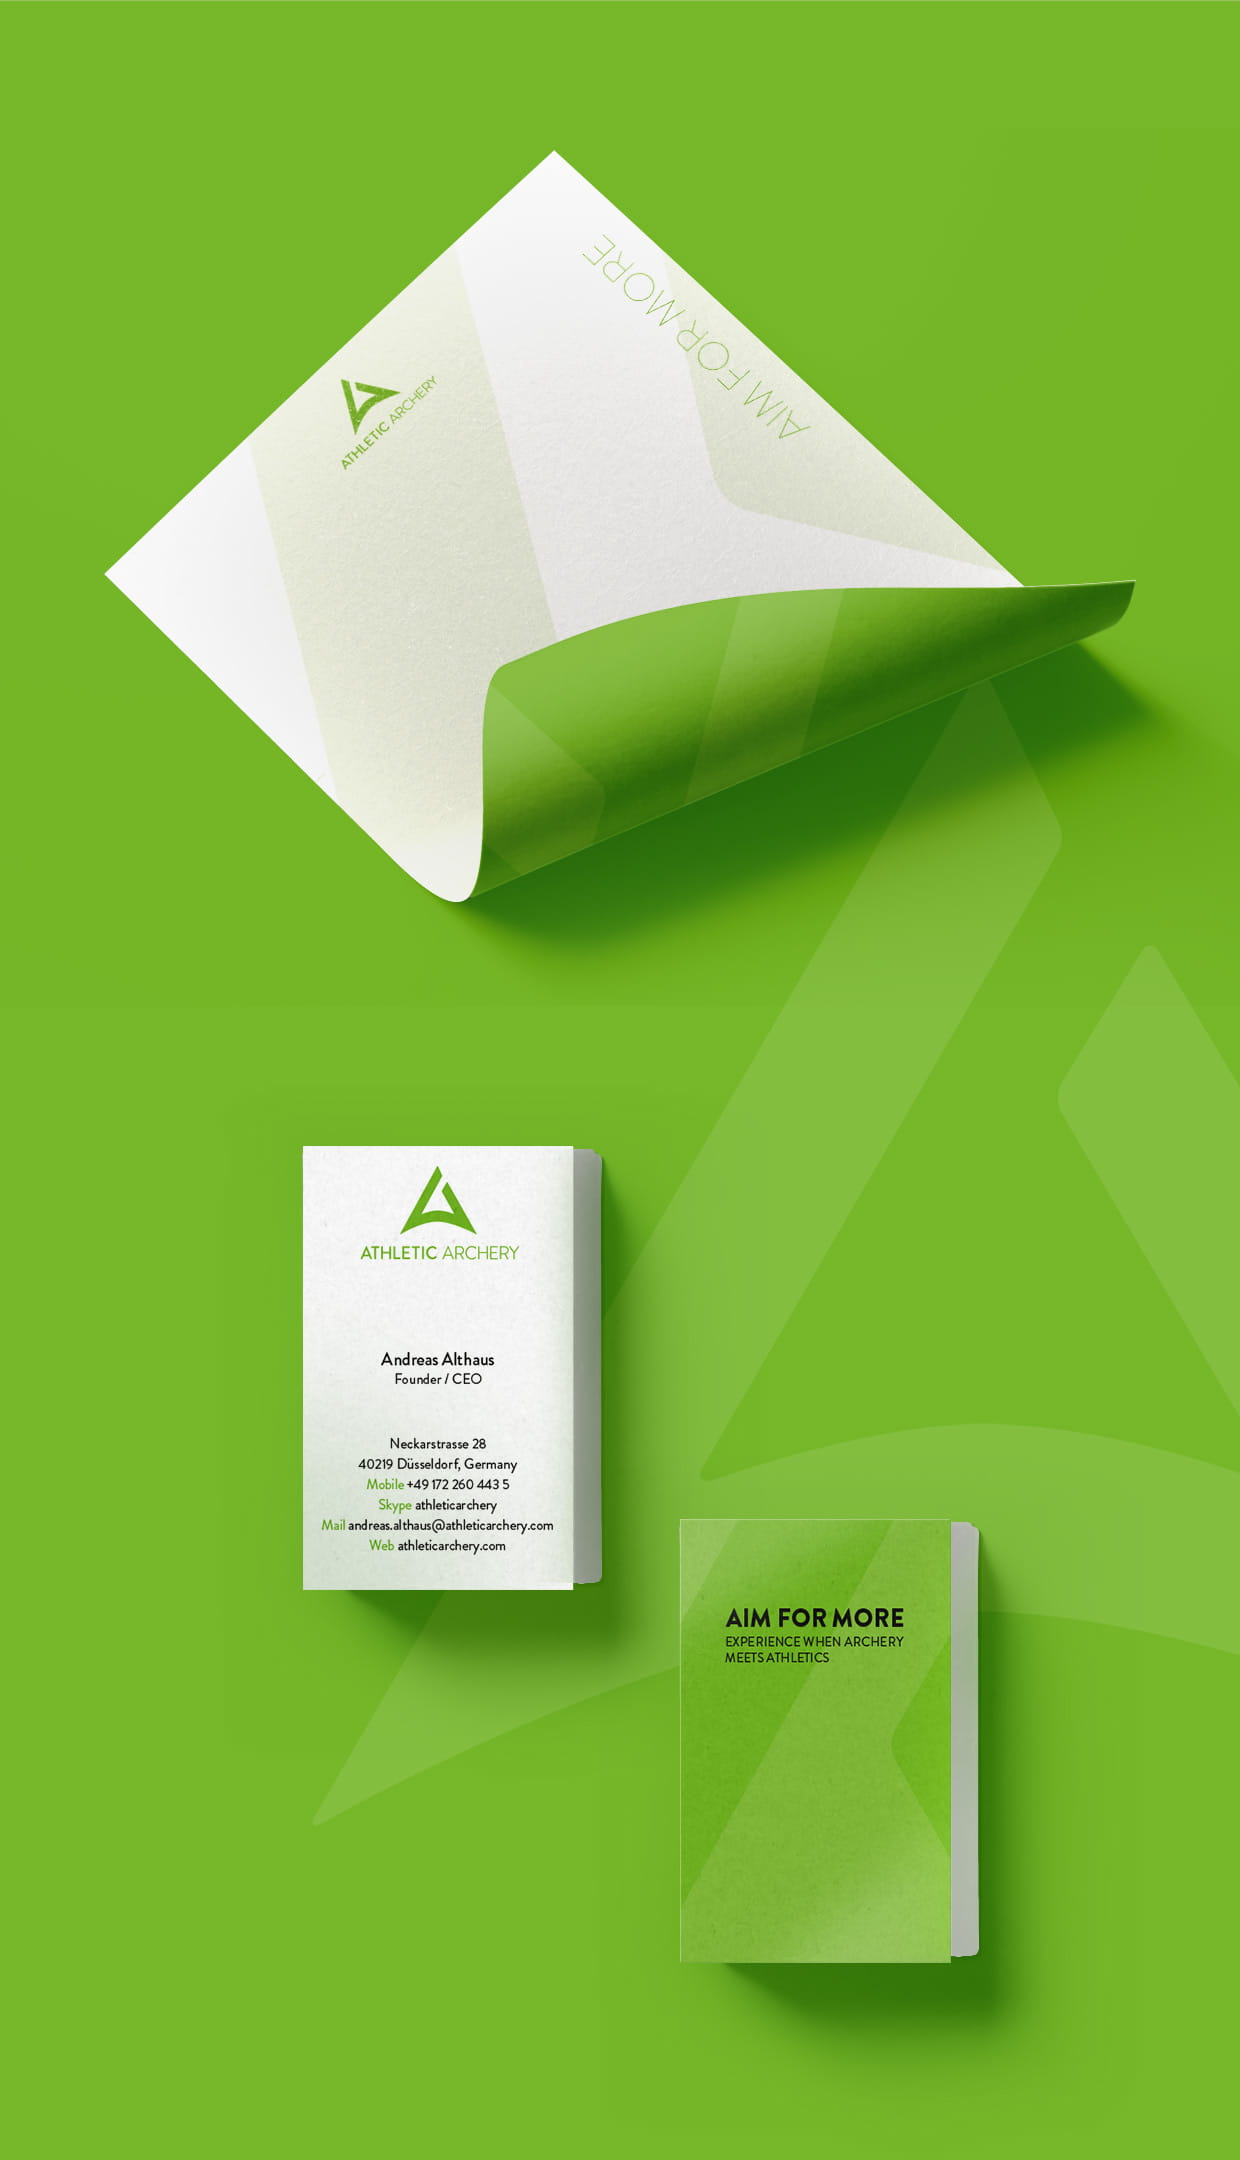 Markenbildung / Corporate Design: Athletic Archery Sportmarketing GmbH